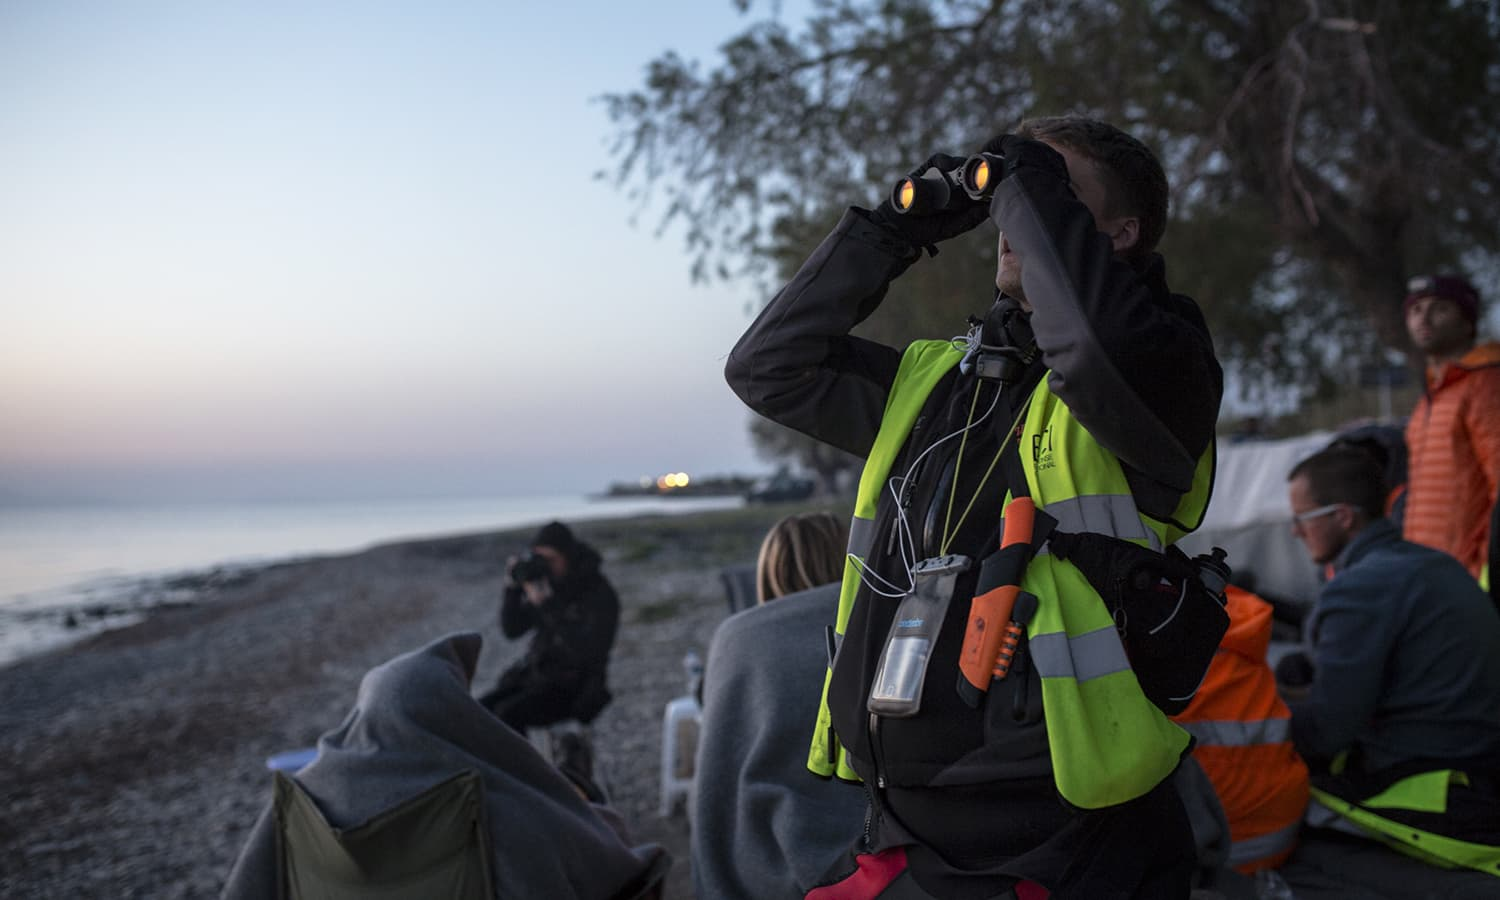 A European volunteer uses binoculars to look for migrants arriving by boat to the island of Lesbos in Greece. International volunteer teams have organised rescue mission, food distributions and all manner of aid for economic migrants arriving in Greece and along the Balkan route.